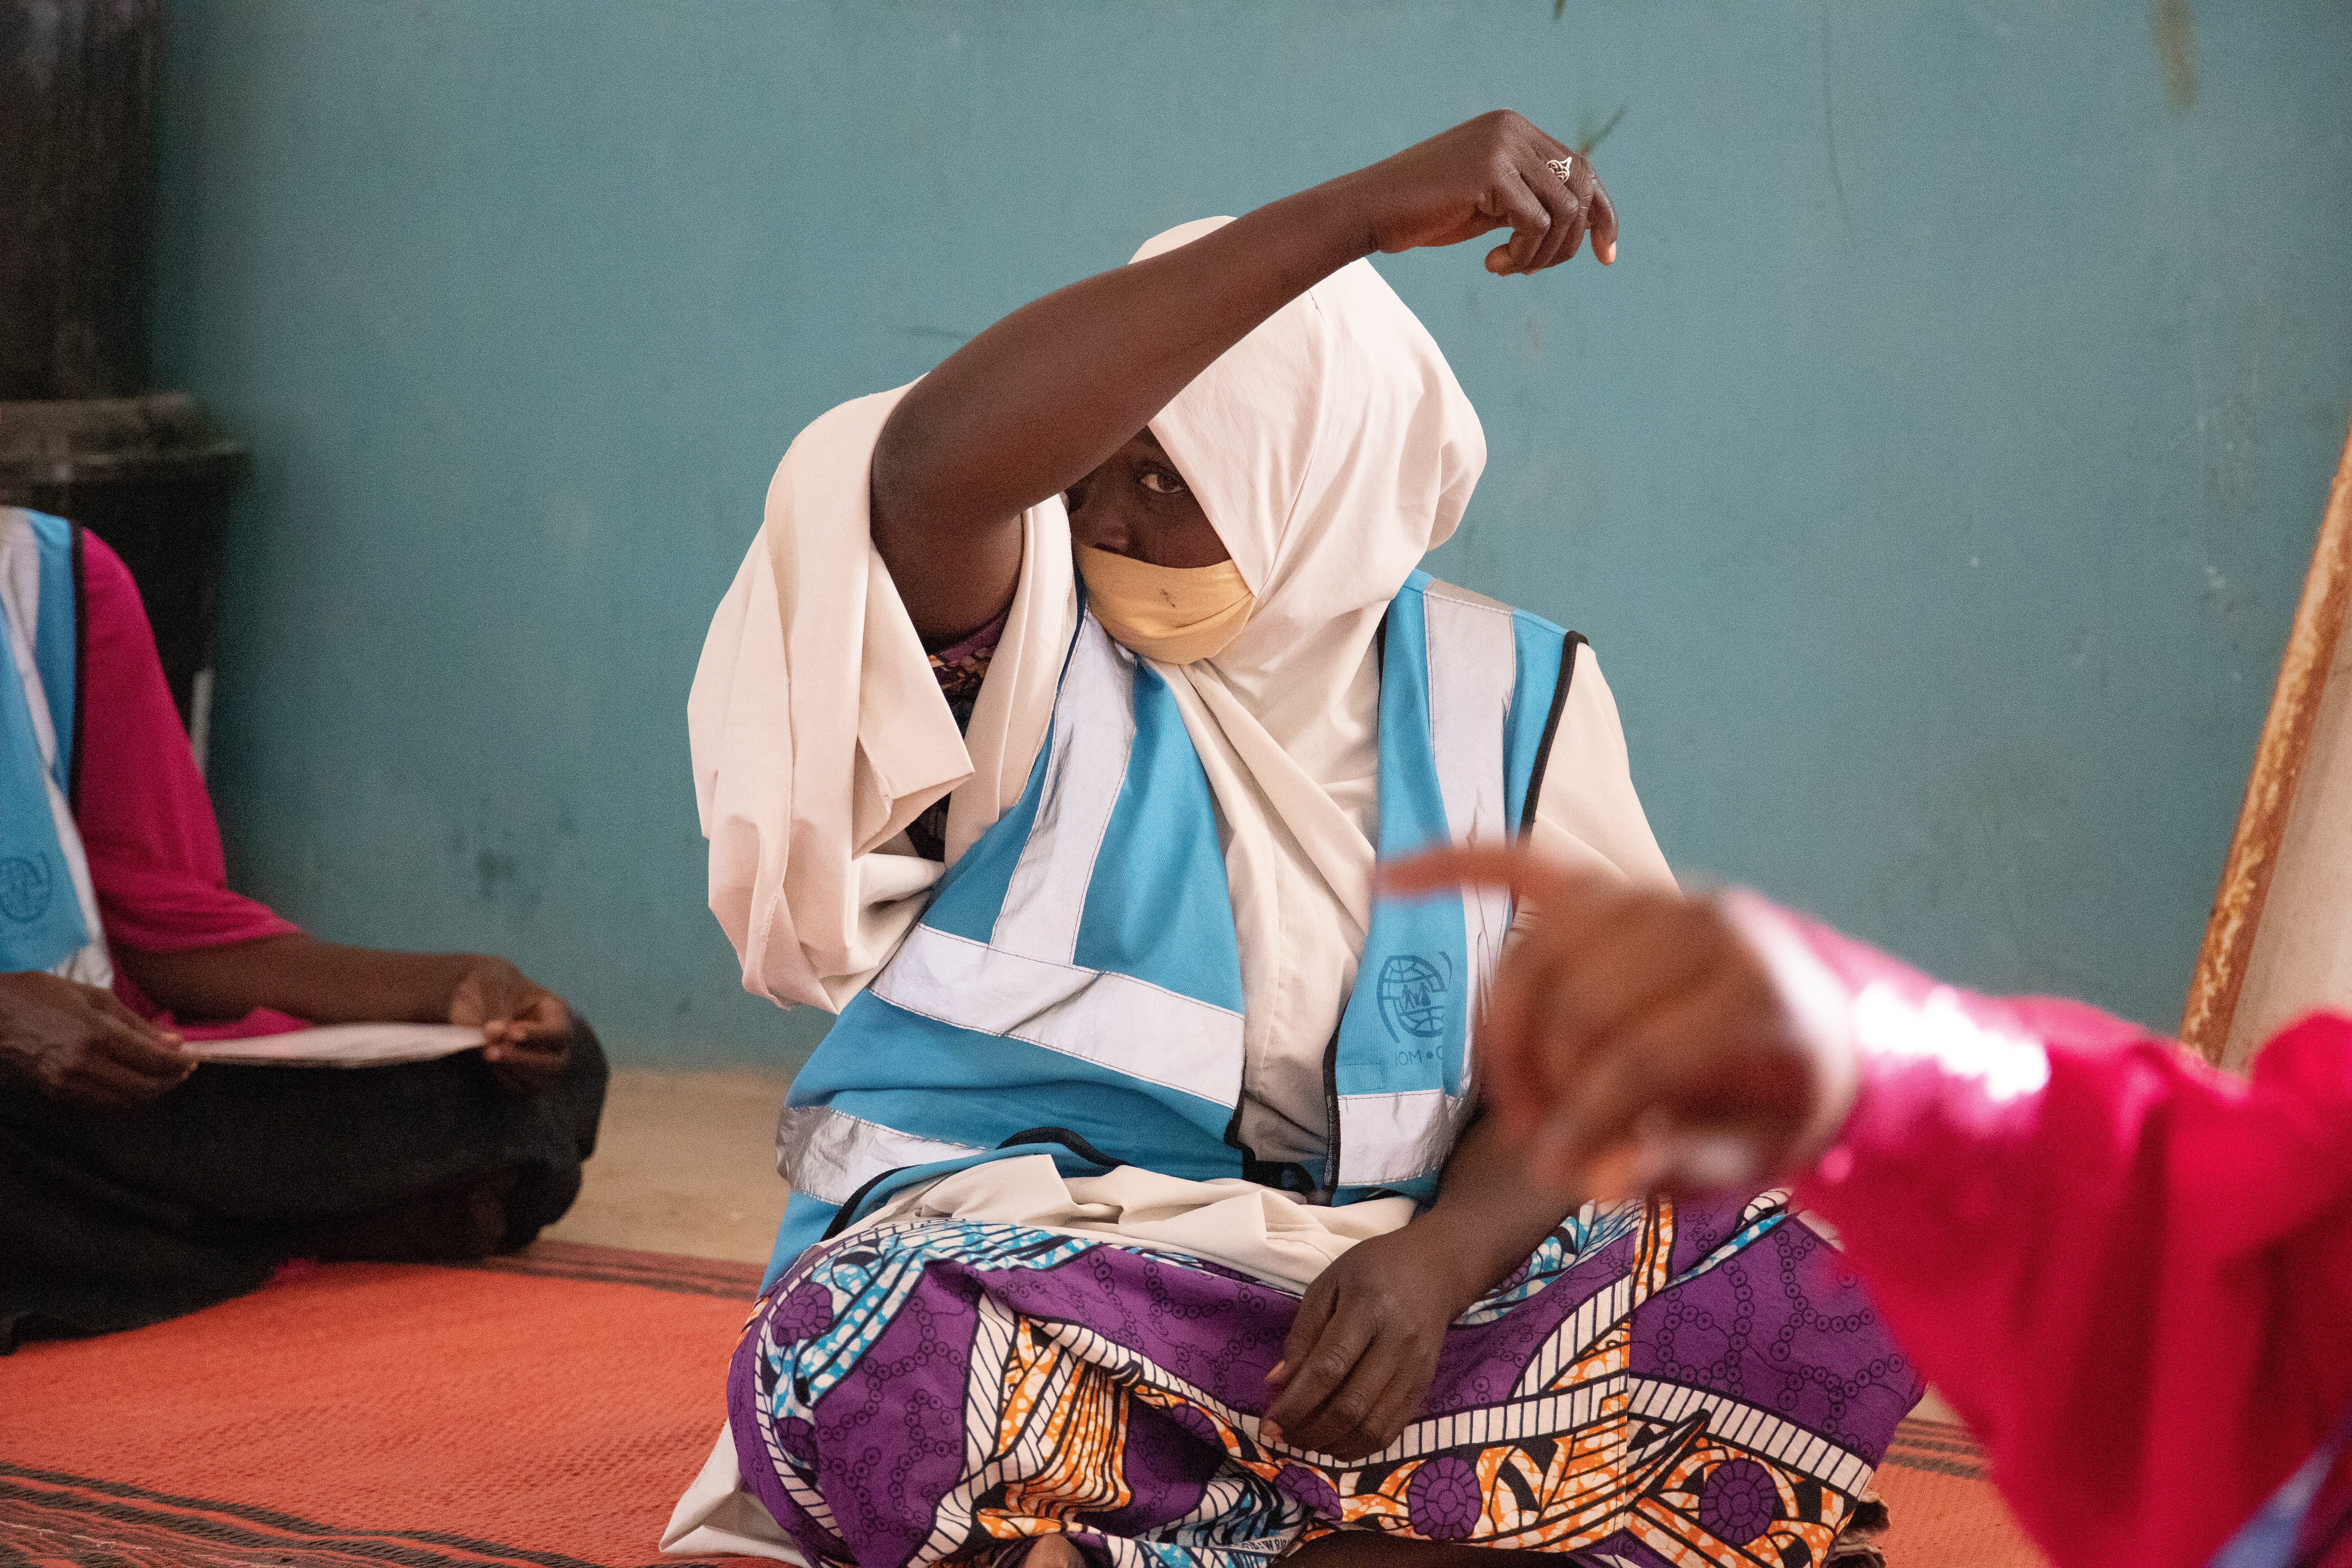 Hajara demonstrates proper coughing techniques during a training session for community volunteers at NYSC camp. Photo: Mshelia Yakubu 2021